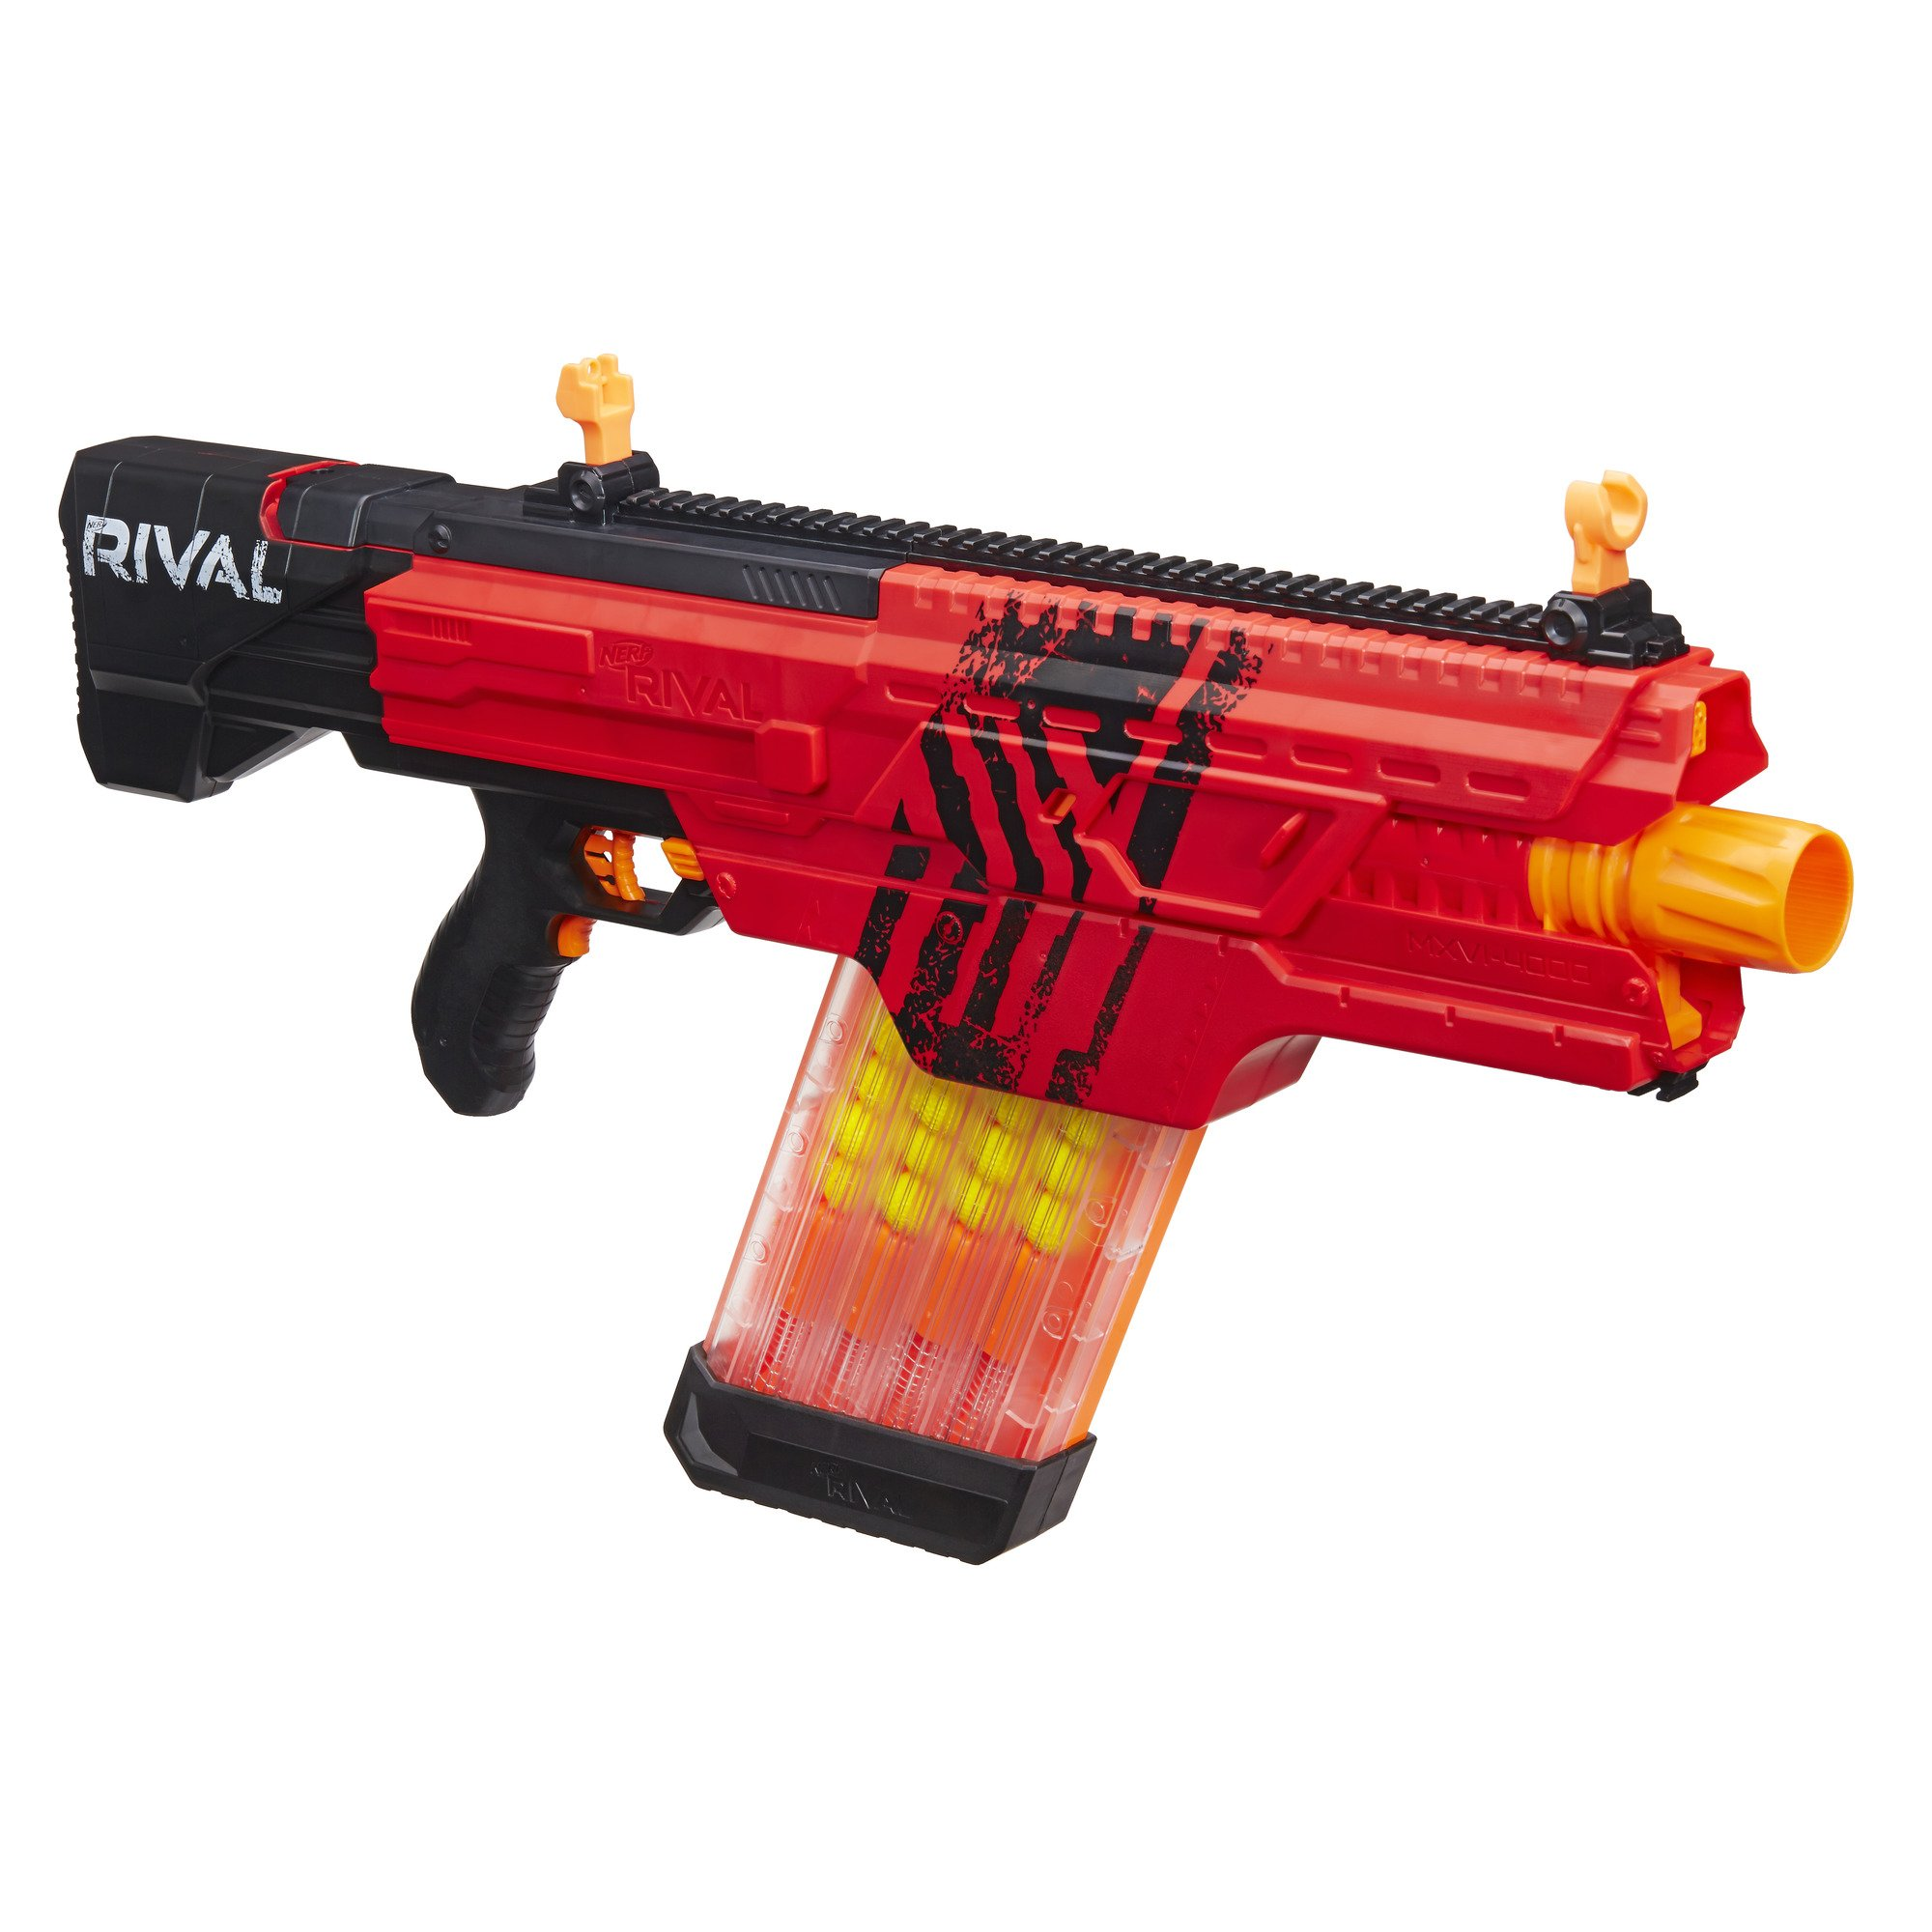 Nerf Rival Khaos MXVI-4000 Blaster (Red) by NERF (Image #3)